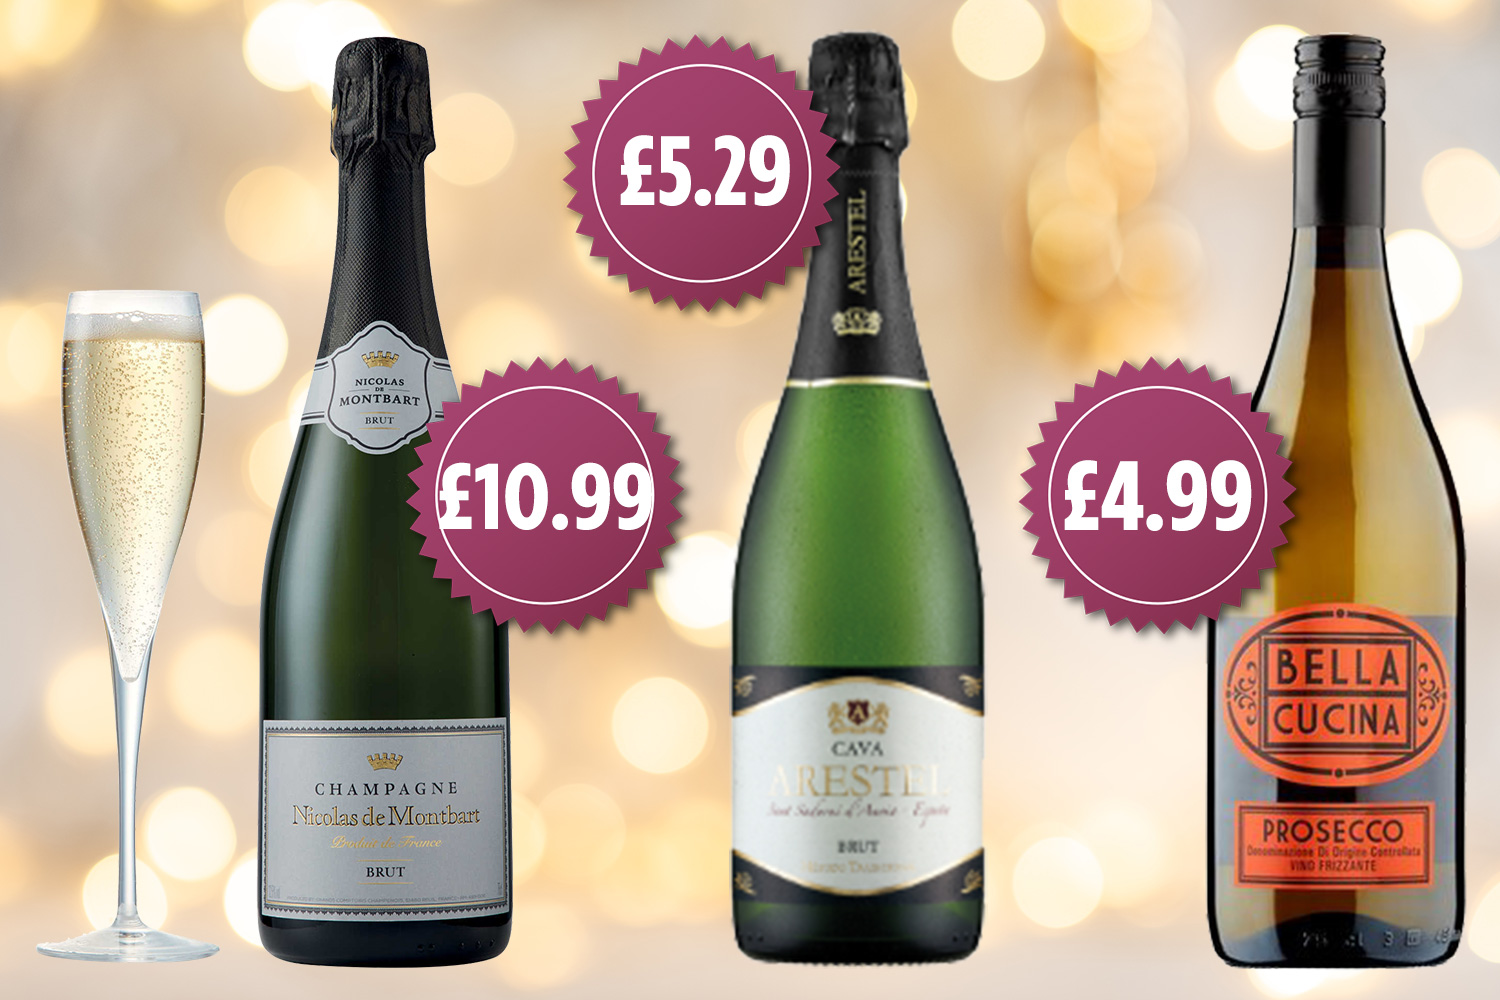 Here are the current cheapest supermarket prices for champagne, cava and prosecco